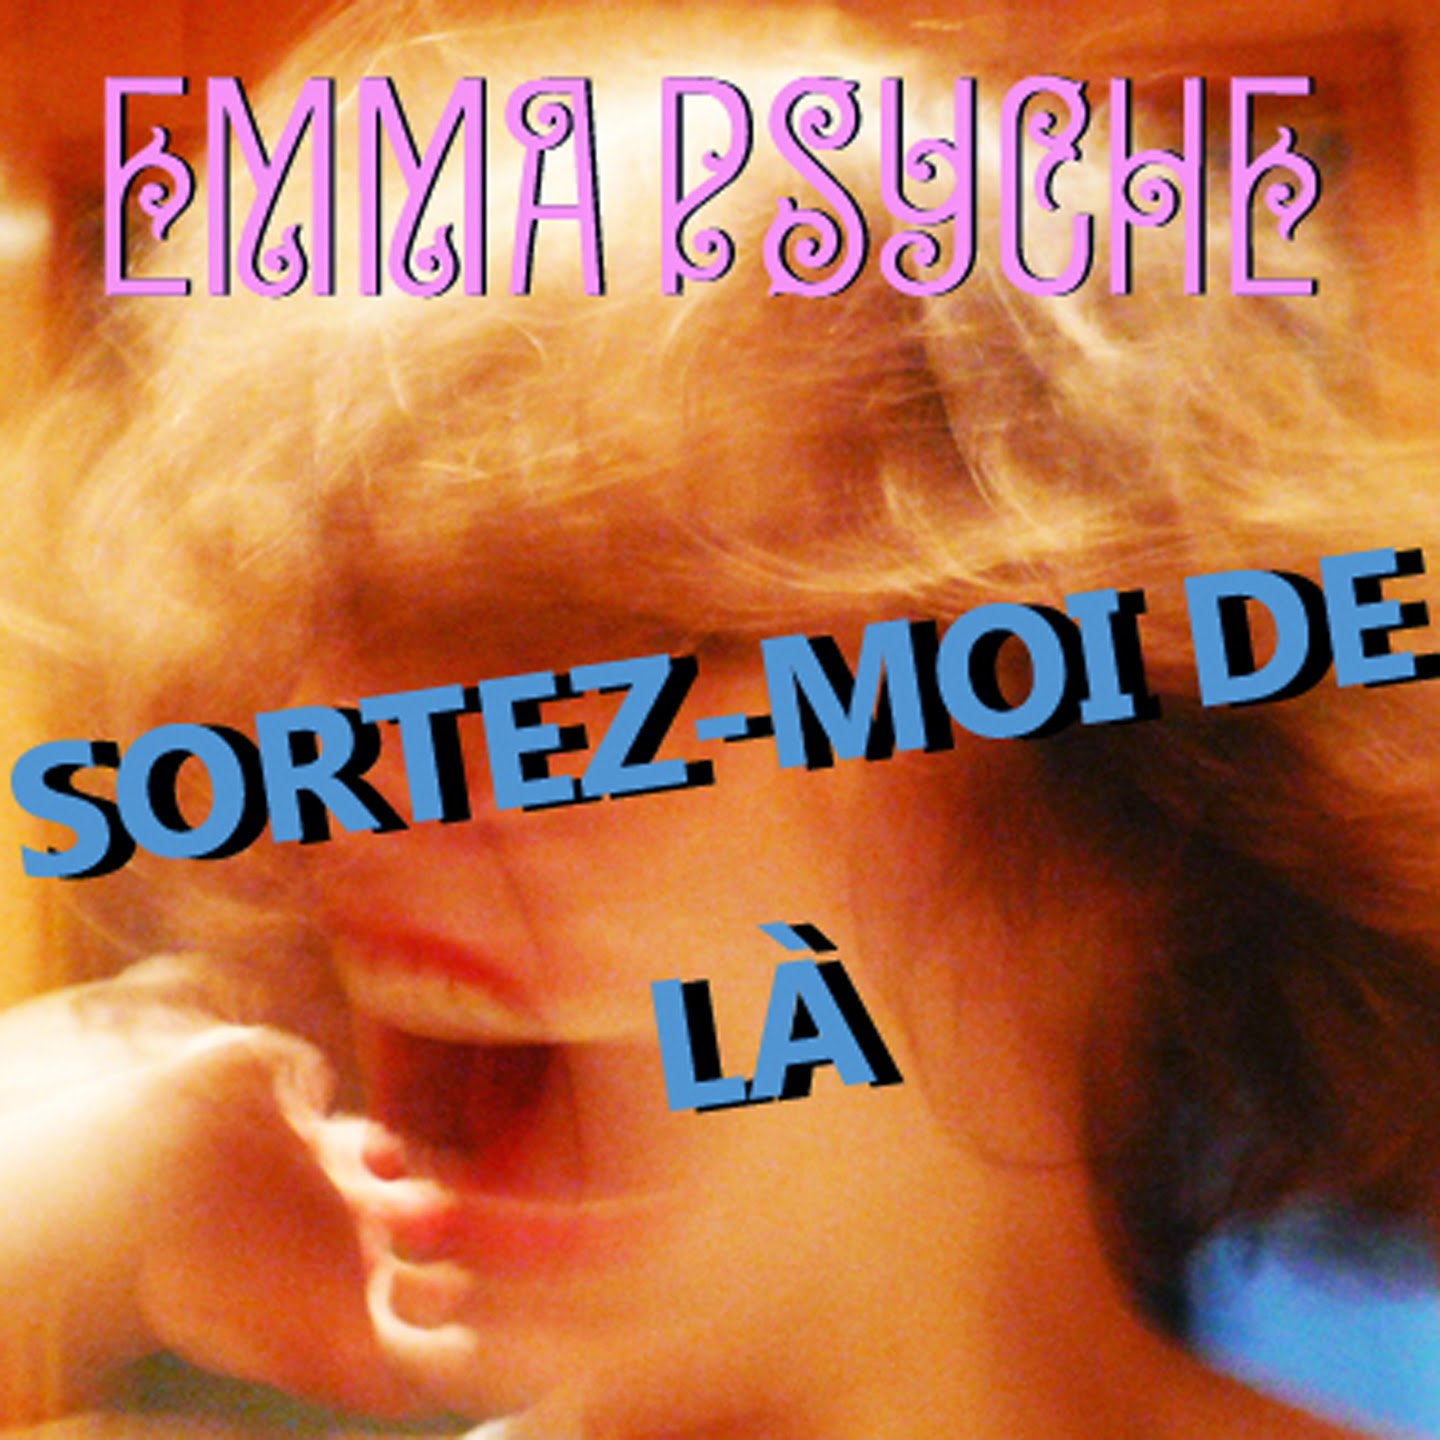 https://itunes.apple.com/fr/album/sortez-moi-de-la-ep/id934638299